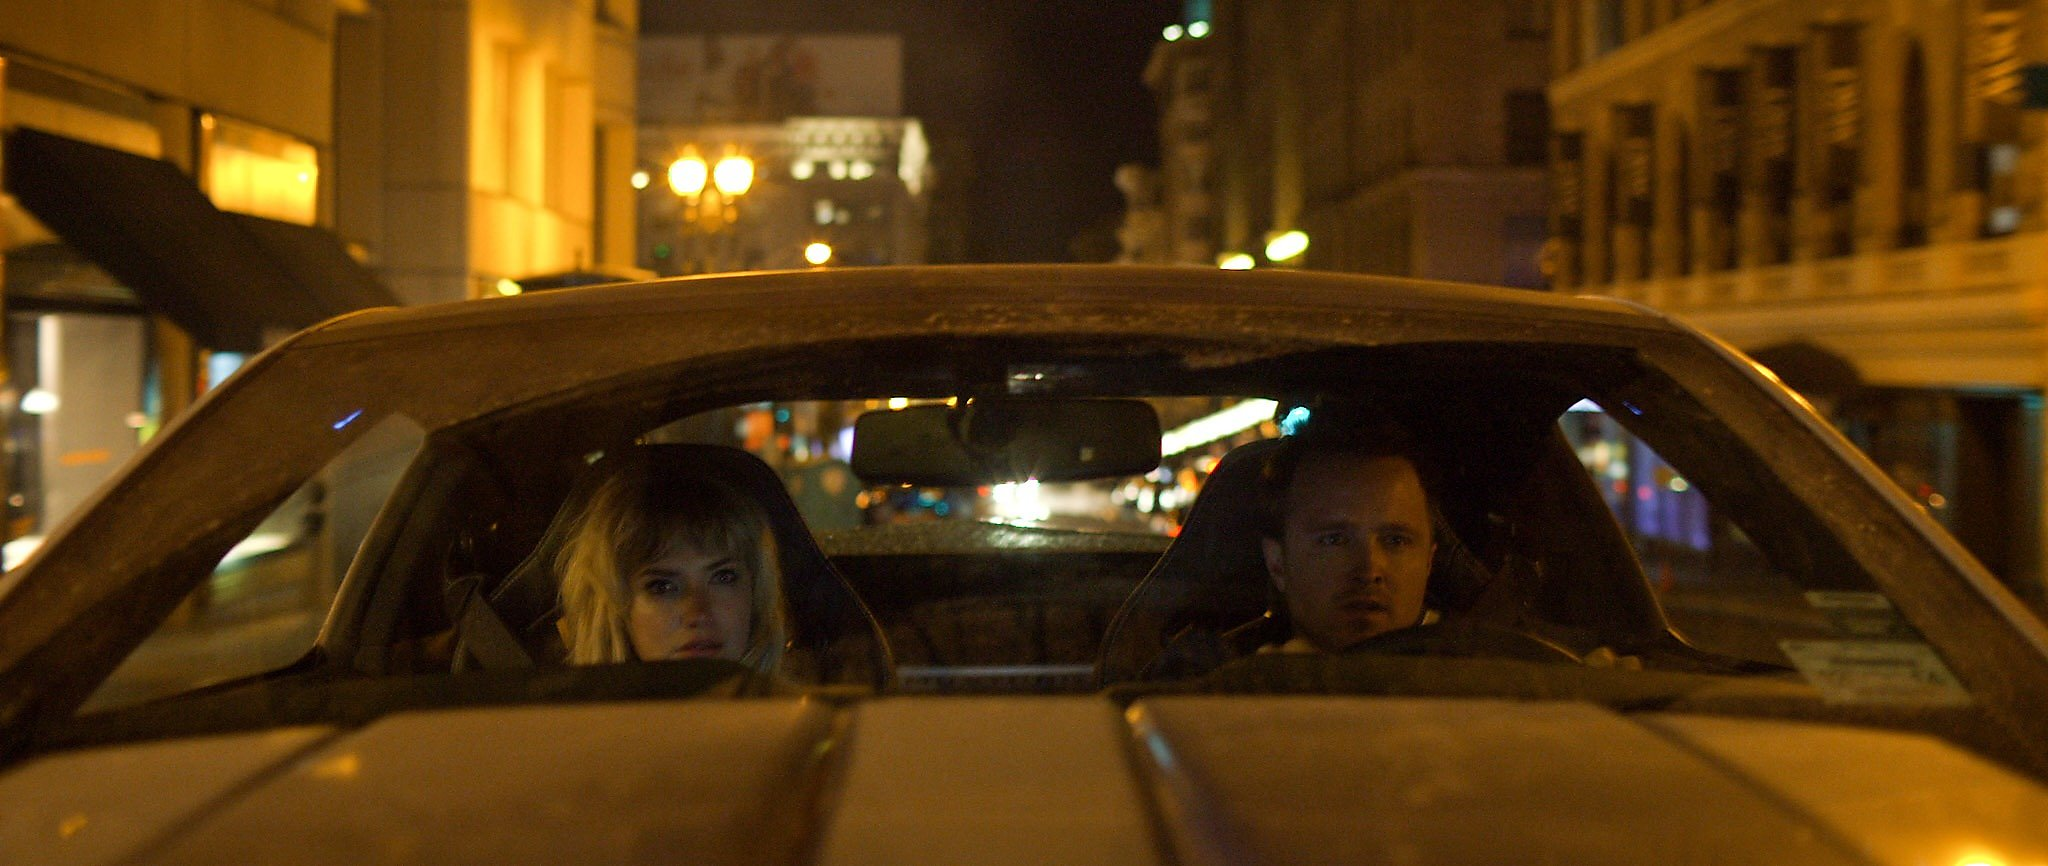 Need for Speed' review: Too long, but certainly not slow - SFGate